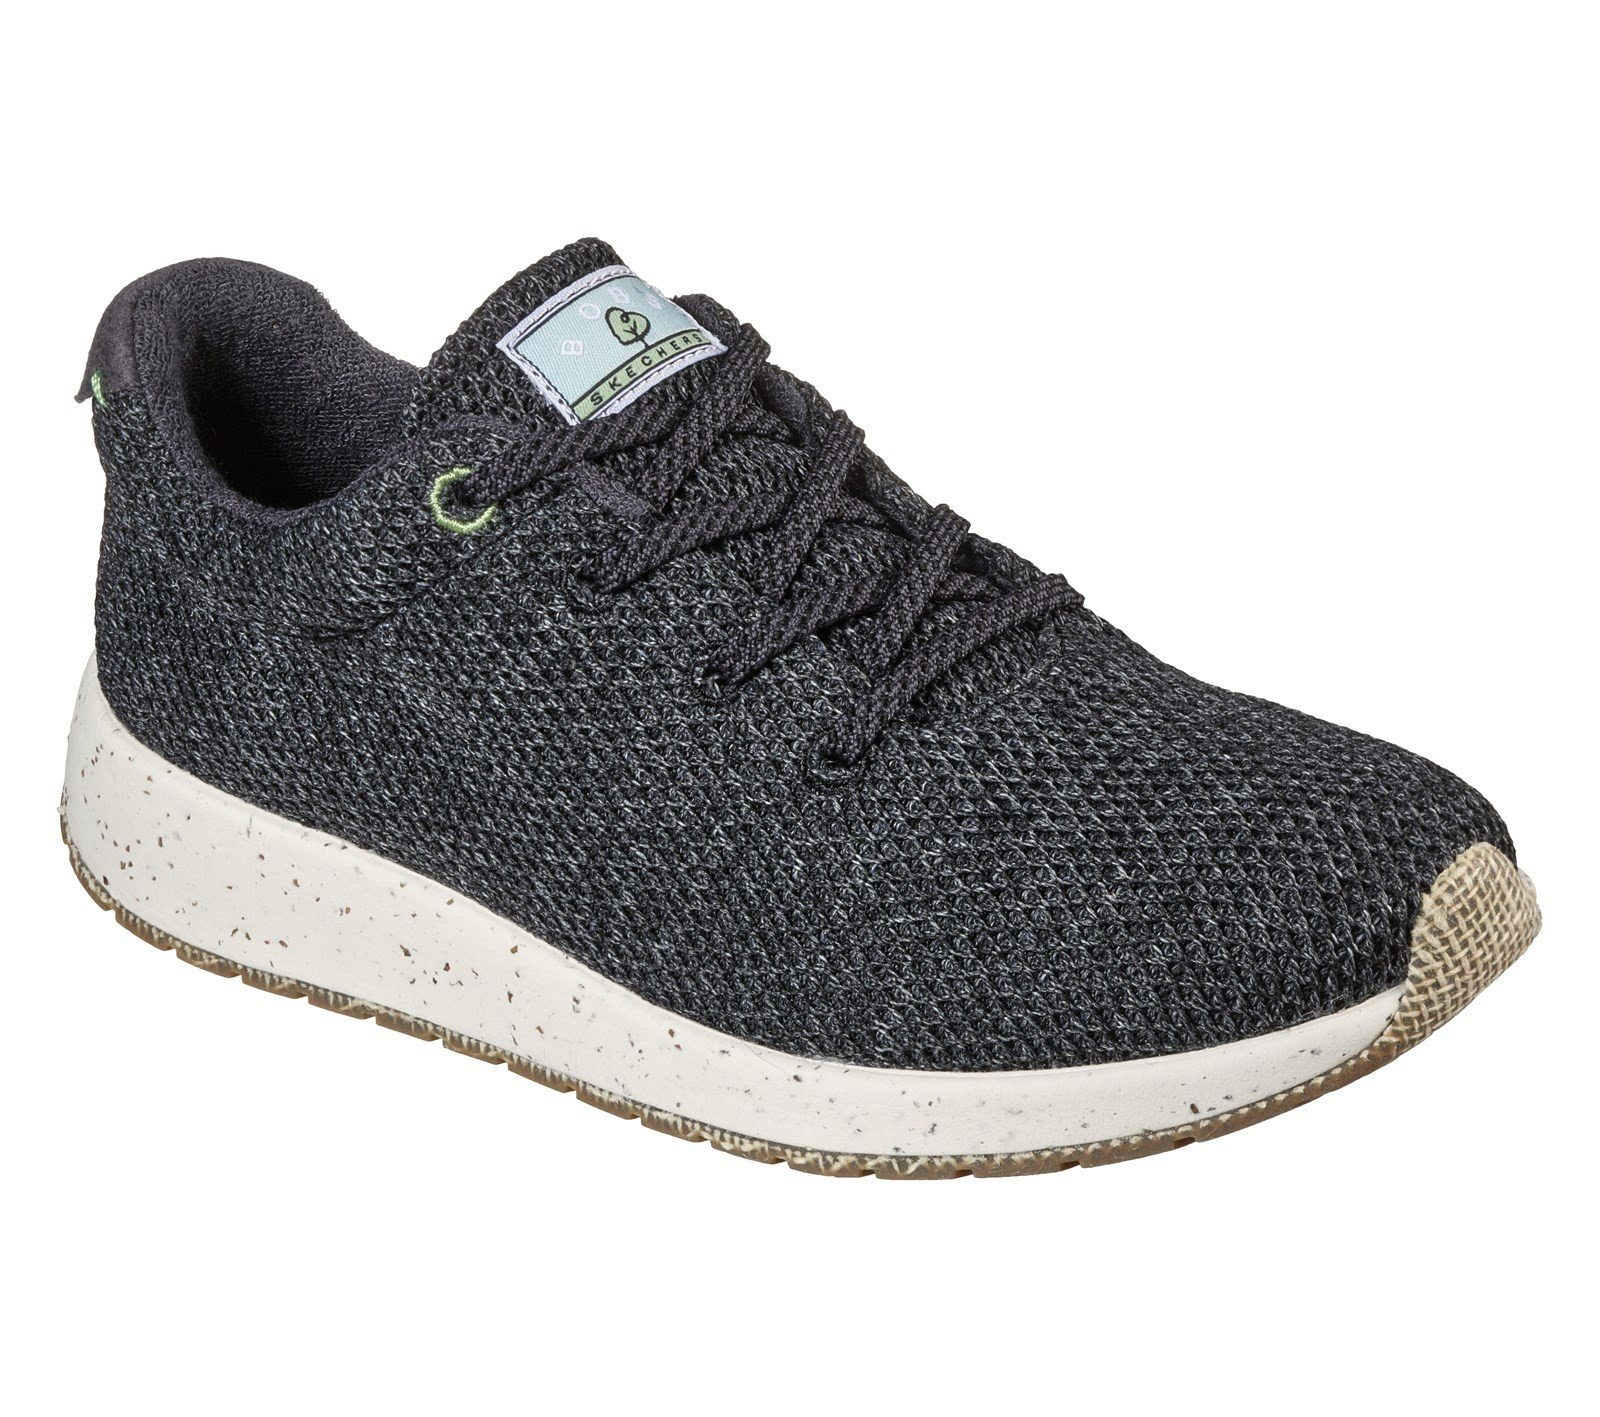 Skechers Women's Bobs Earth Trainer Various Colours 32132 - Charcoal 3